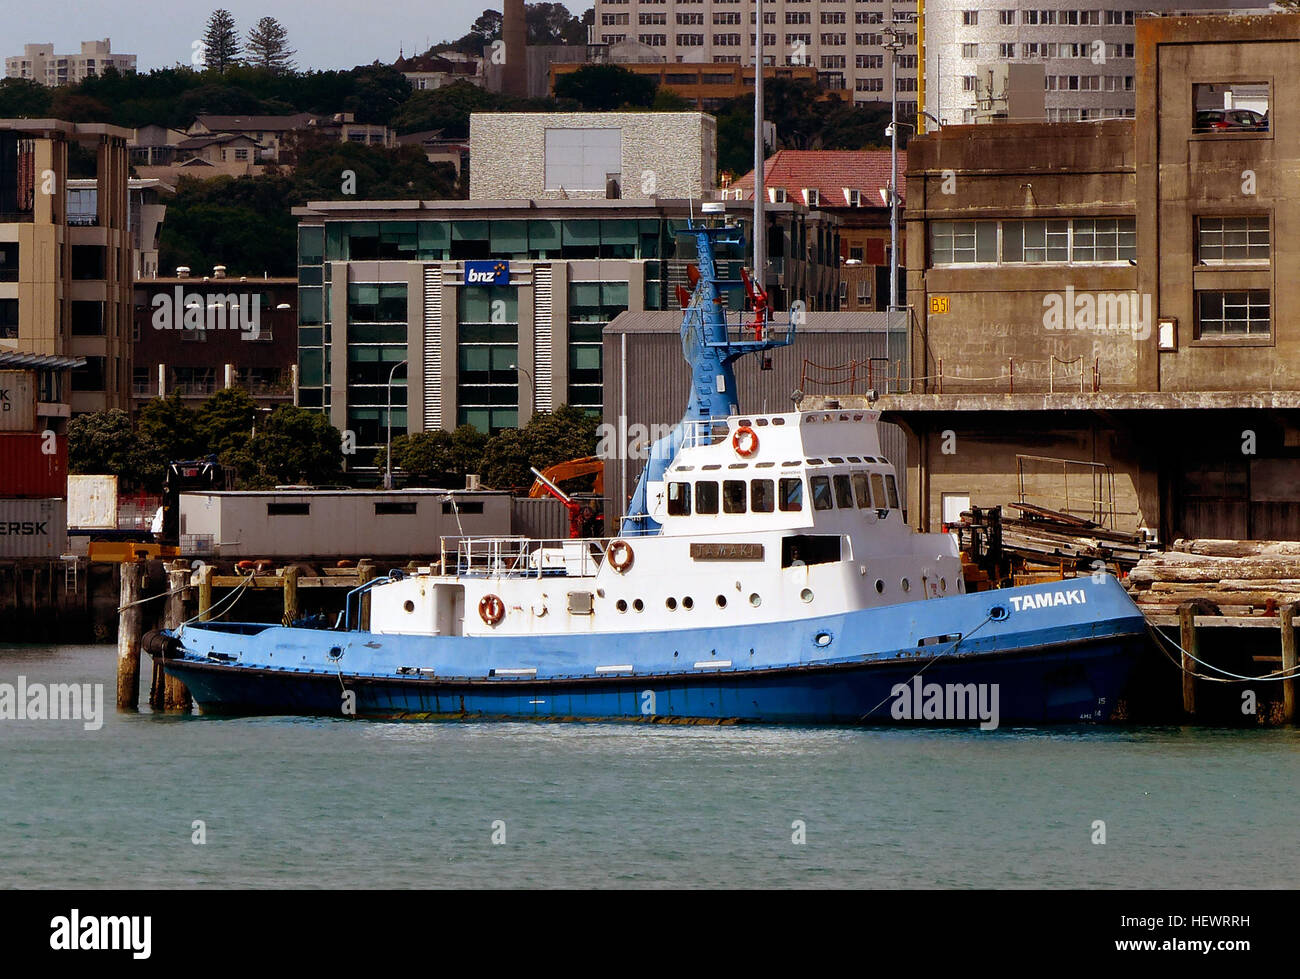 TAMAKI Tug      IMO: 7226550 AIS Type: Tug Gross Tonnage: 221 Deadweight: 340 t Length × Breadth: 29.67m × - Stock Image